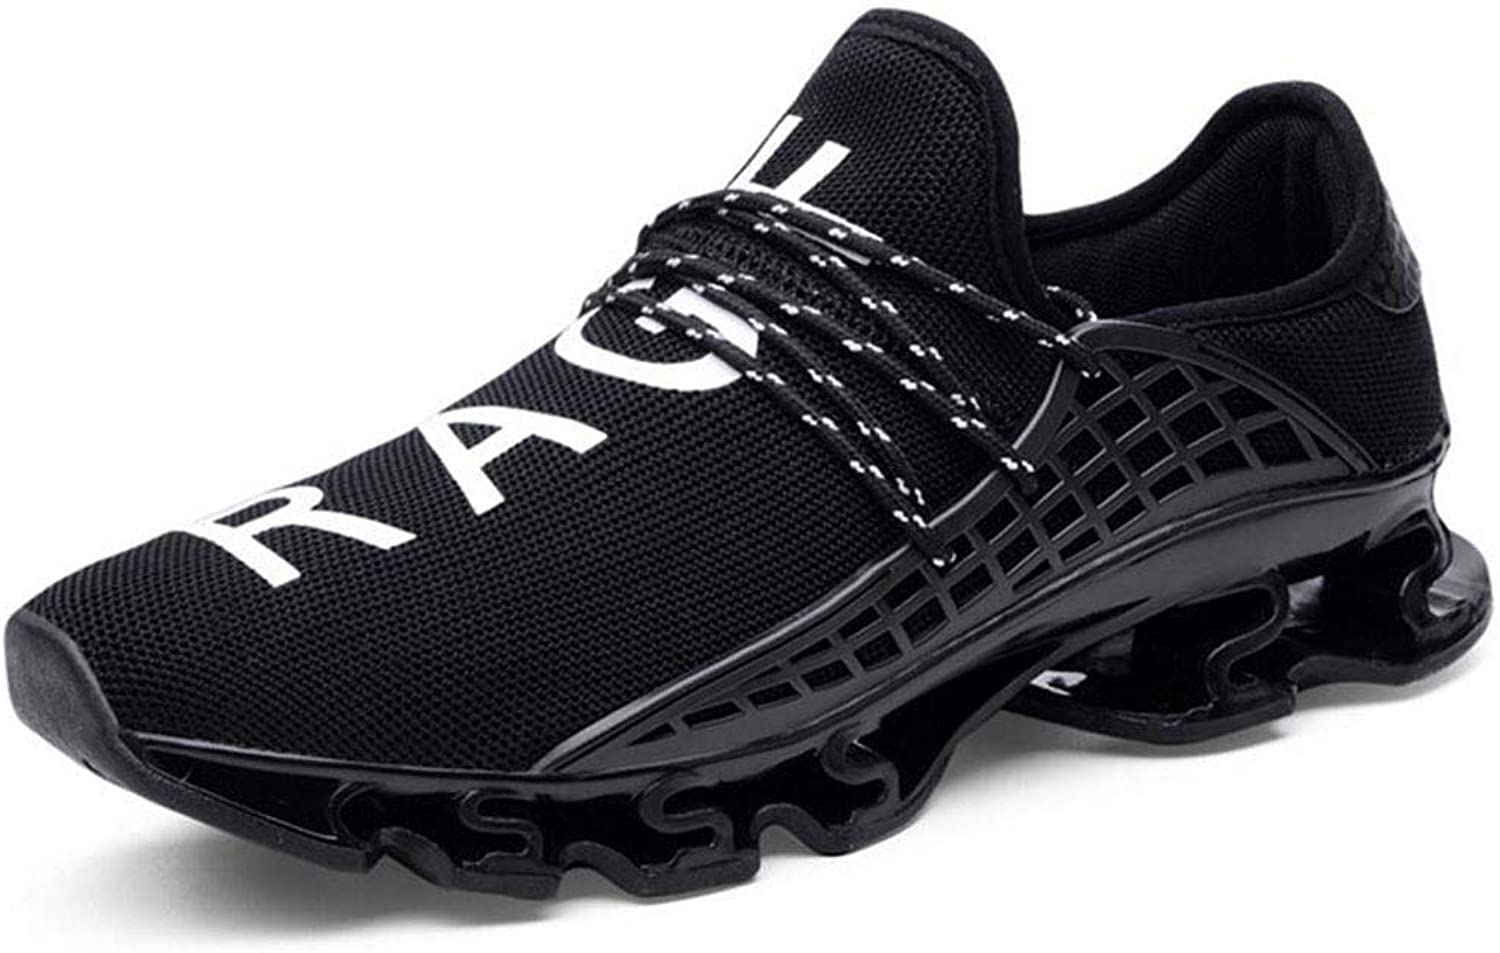 Zxcvb Men's Lightweight Slip On Mesh Sneakers Outdoor Athletic Running shoes Casual Sport shoes